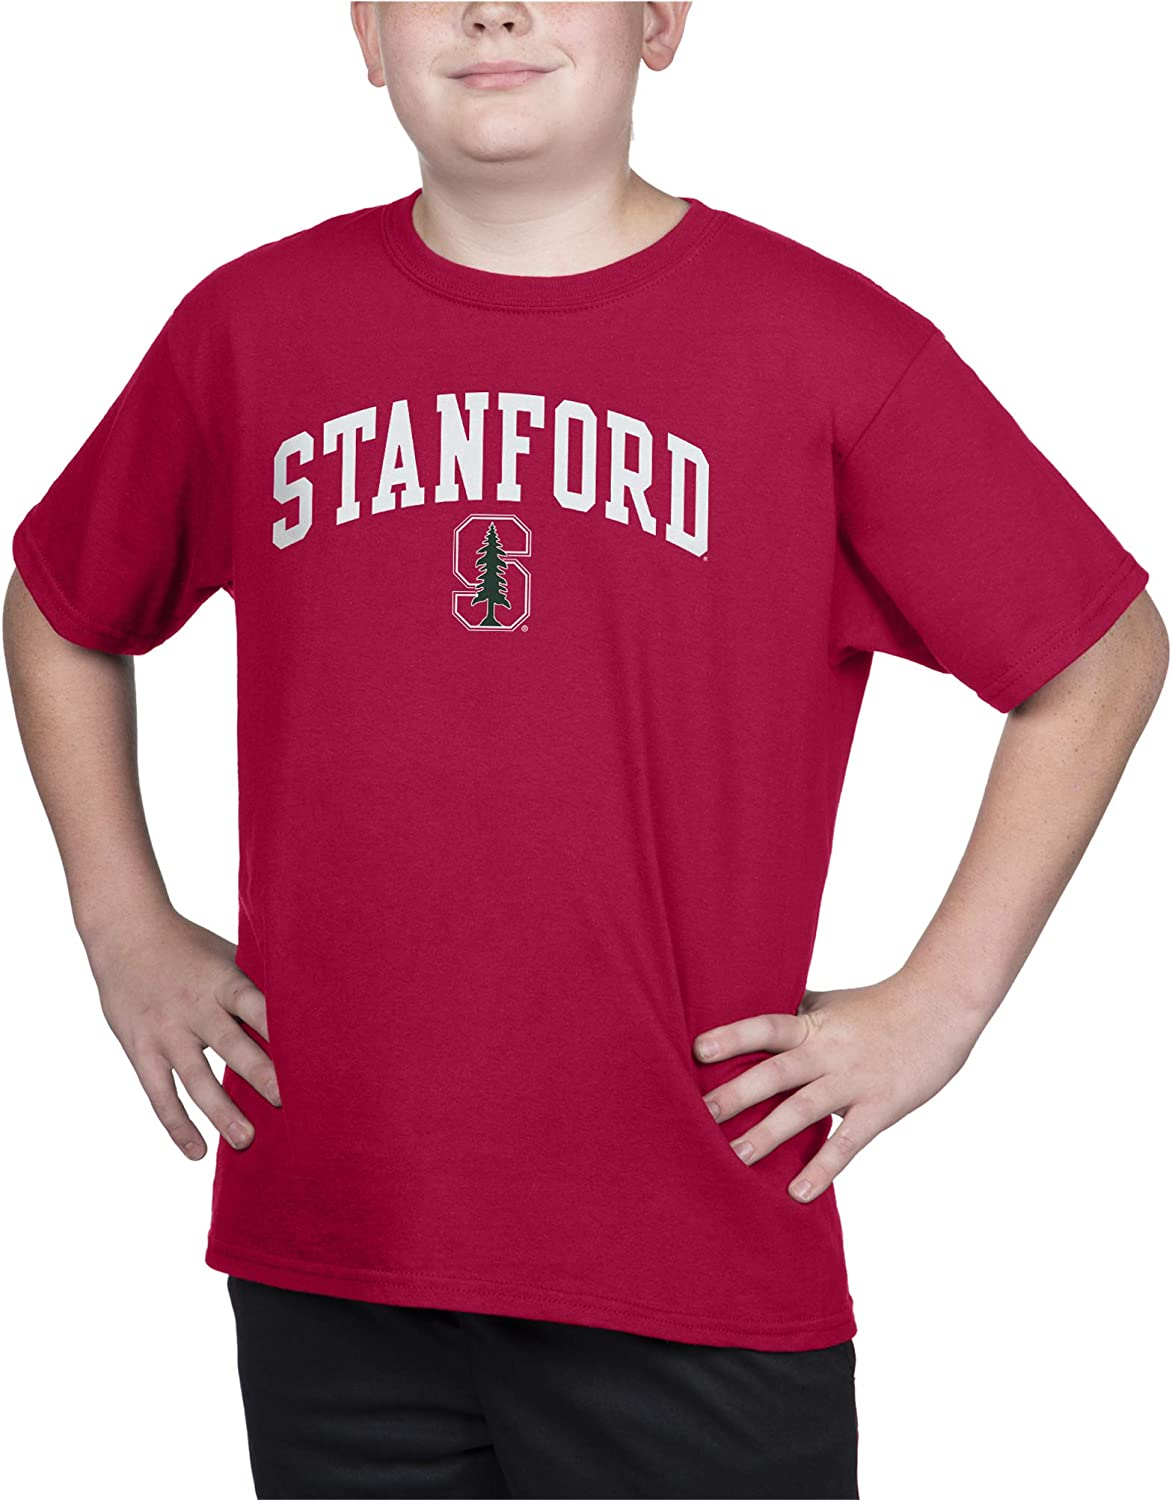 Top of the World Youth Boys Team Color Short Sleeve Arch Tee